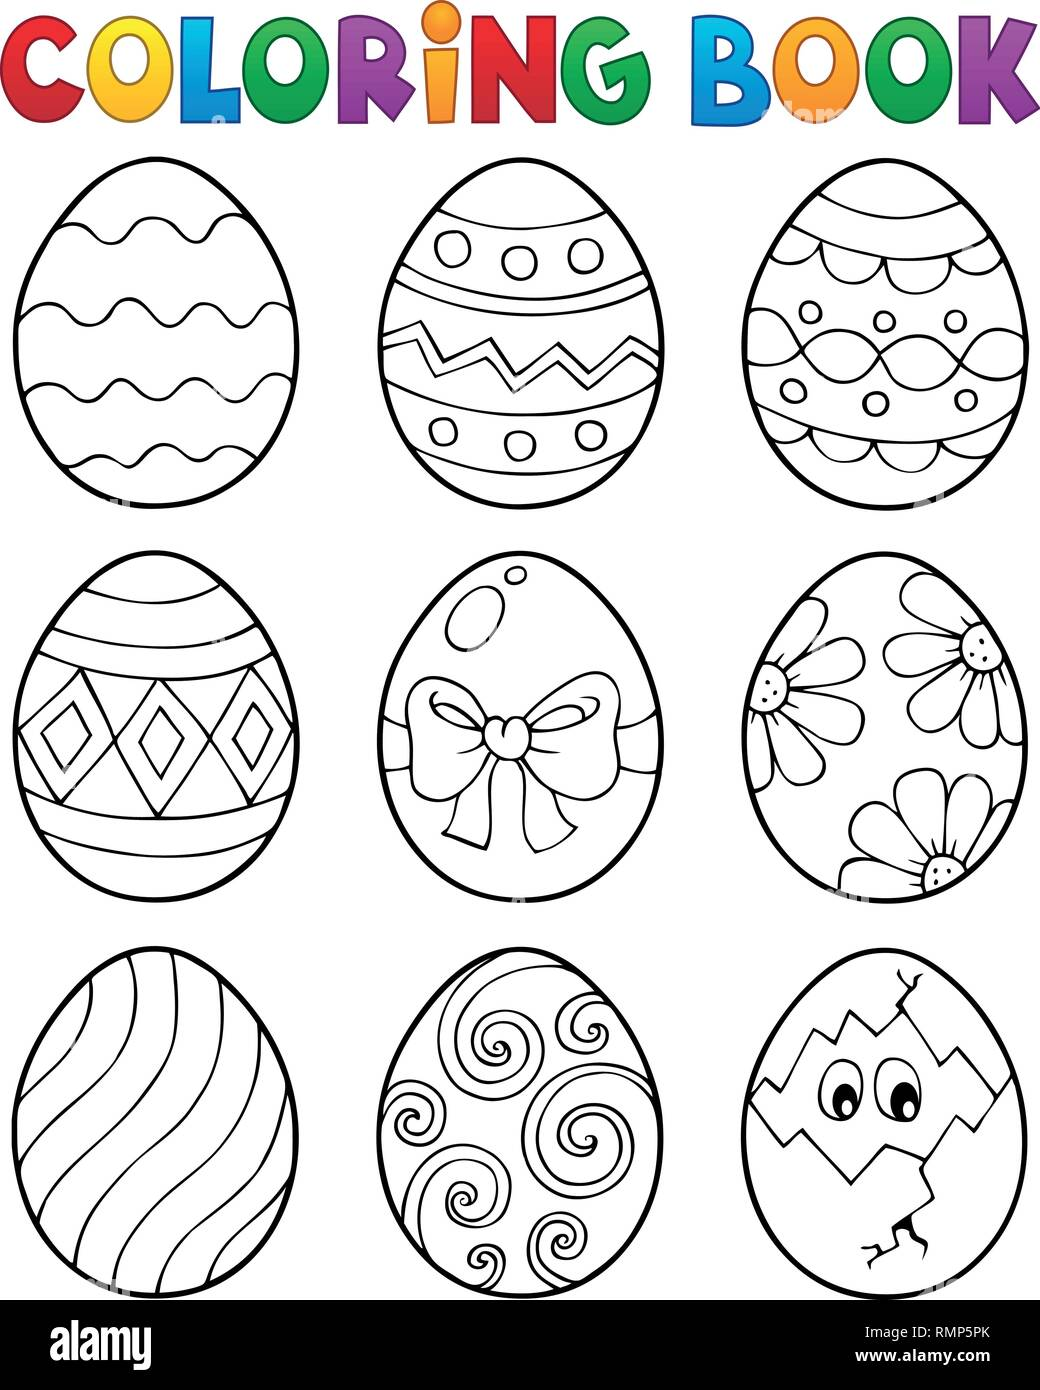 Coloring Book Easter Eggs Theme 3 - Eps10 Vector Illustration